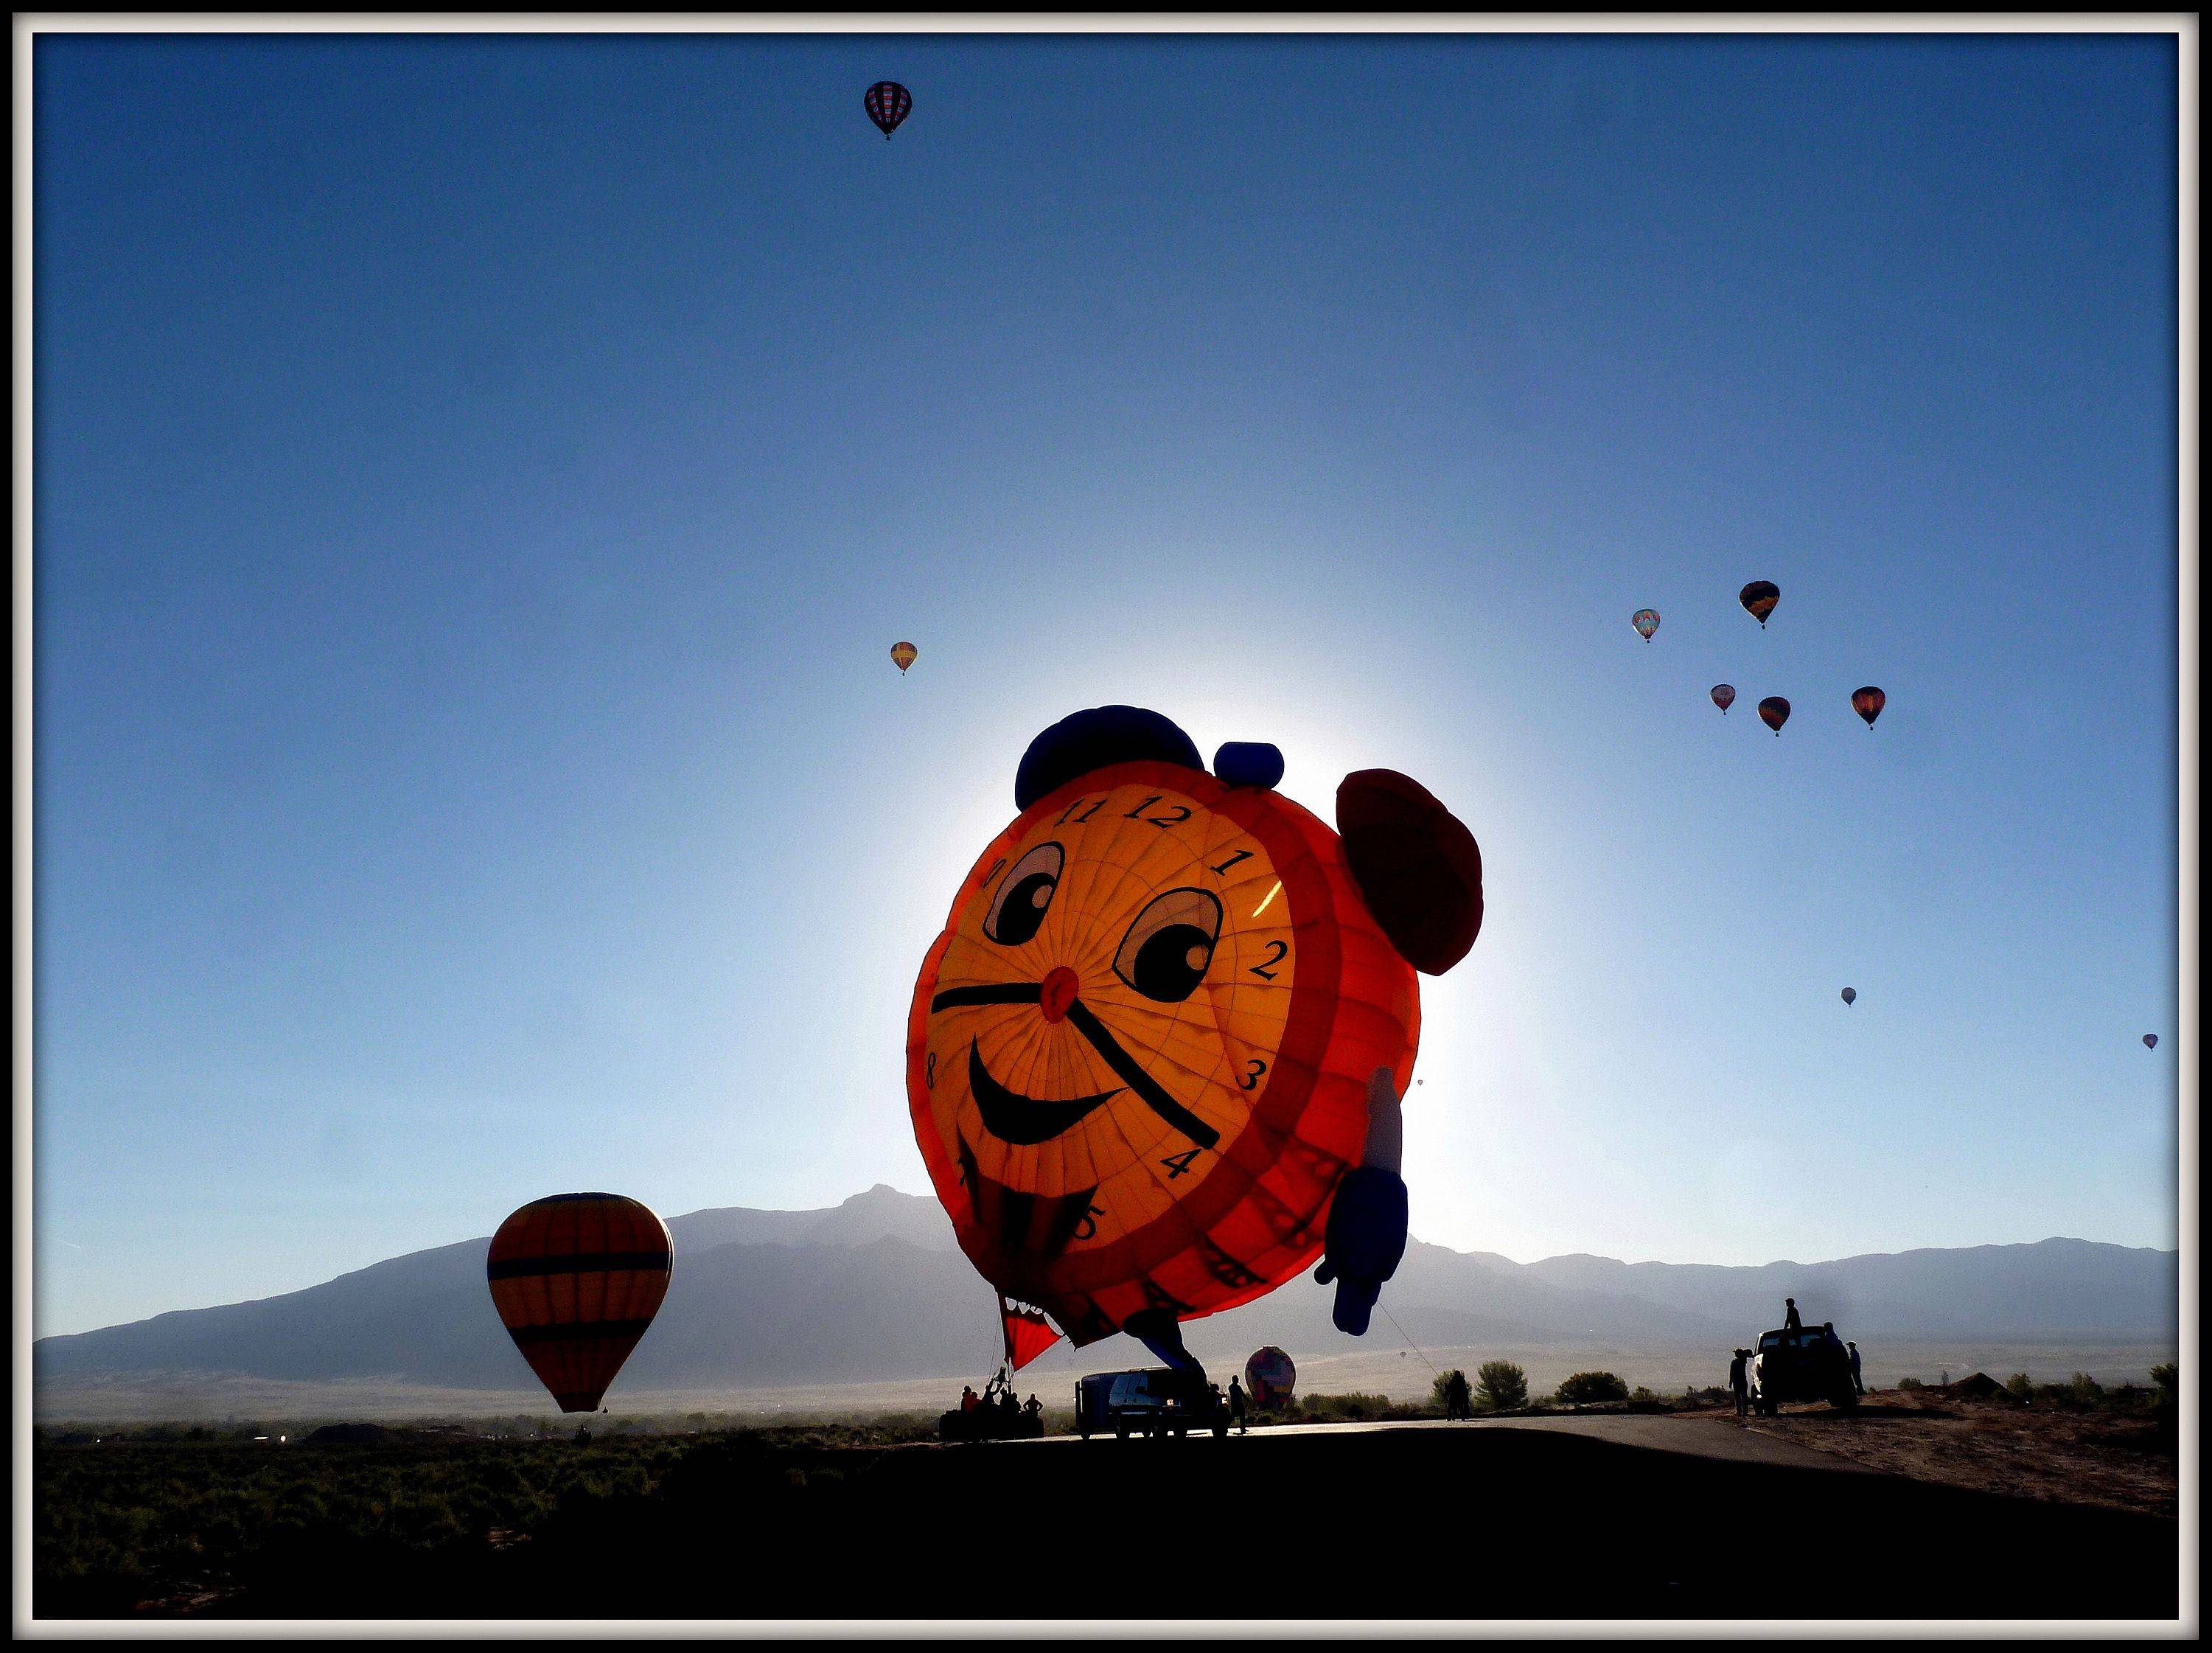 This is this year's International Balloon Fiesta 2013 held in Albuquerque, New Mexico.